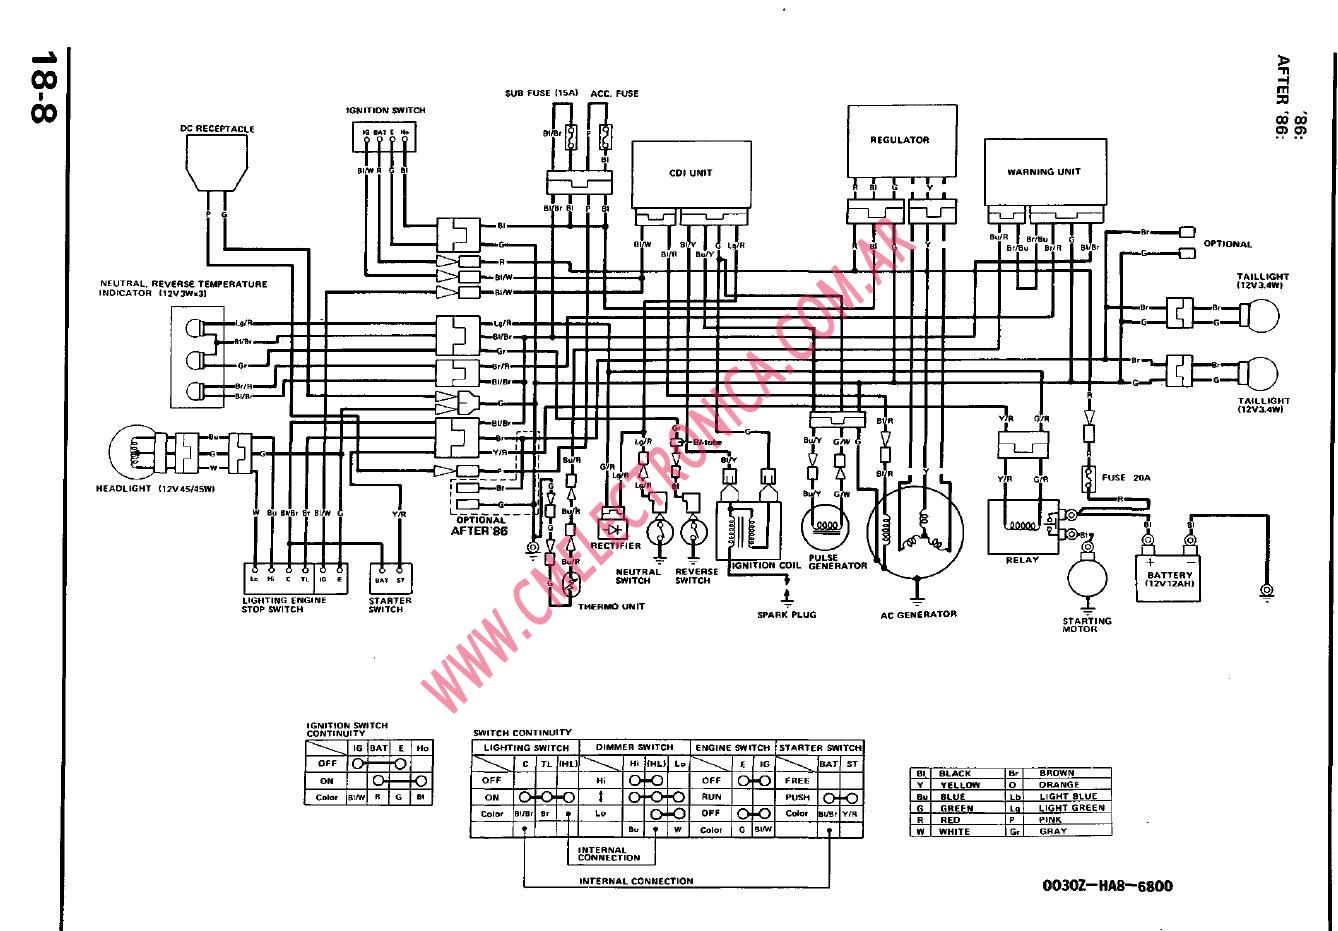 John Deere Gt235 Engine Diagram as well Kohler Kt17qs Diagram Free Engine Image For User besides 314 Will Not Crank Not Even Flinch Archive Weekend Freedom Pertaining To John Deere Starter Relay Wiring Diagram moreover Used John Deere Parts Online also B2410 Kubota Wiring Diagram. on john deere 300 garden tractor wiring diagram